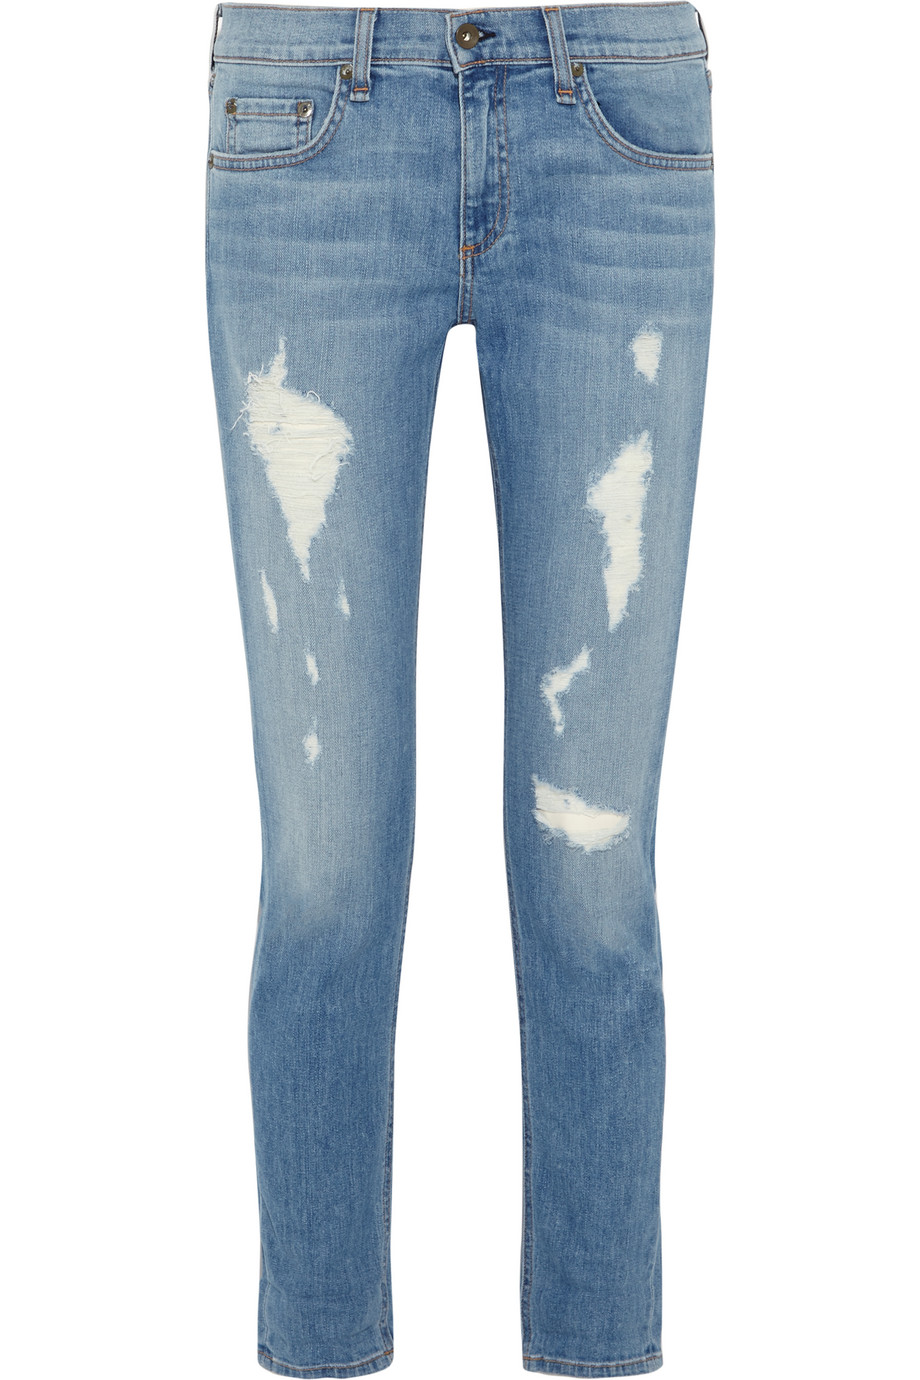 Rag & Bone The Dre Distressed Mid-Rise Slim Boyfriend Jeans, Light Denim, Women's, Size: 29